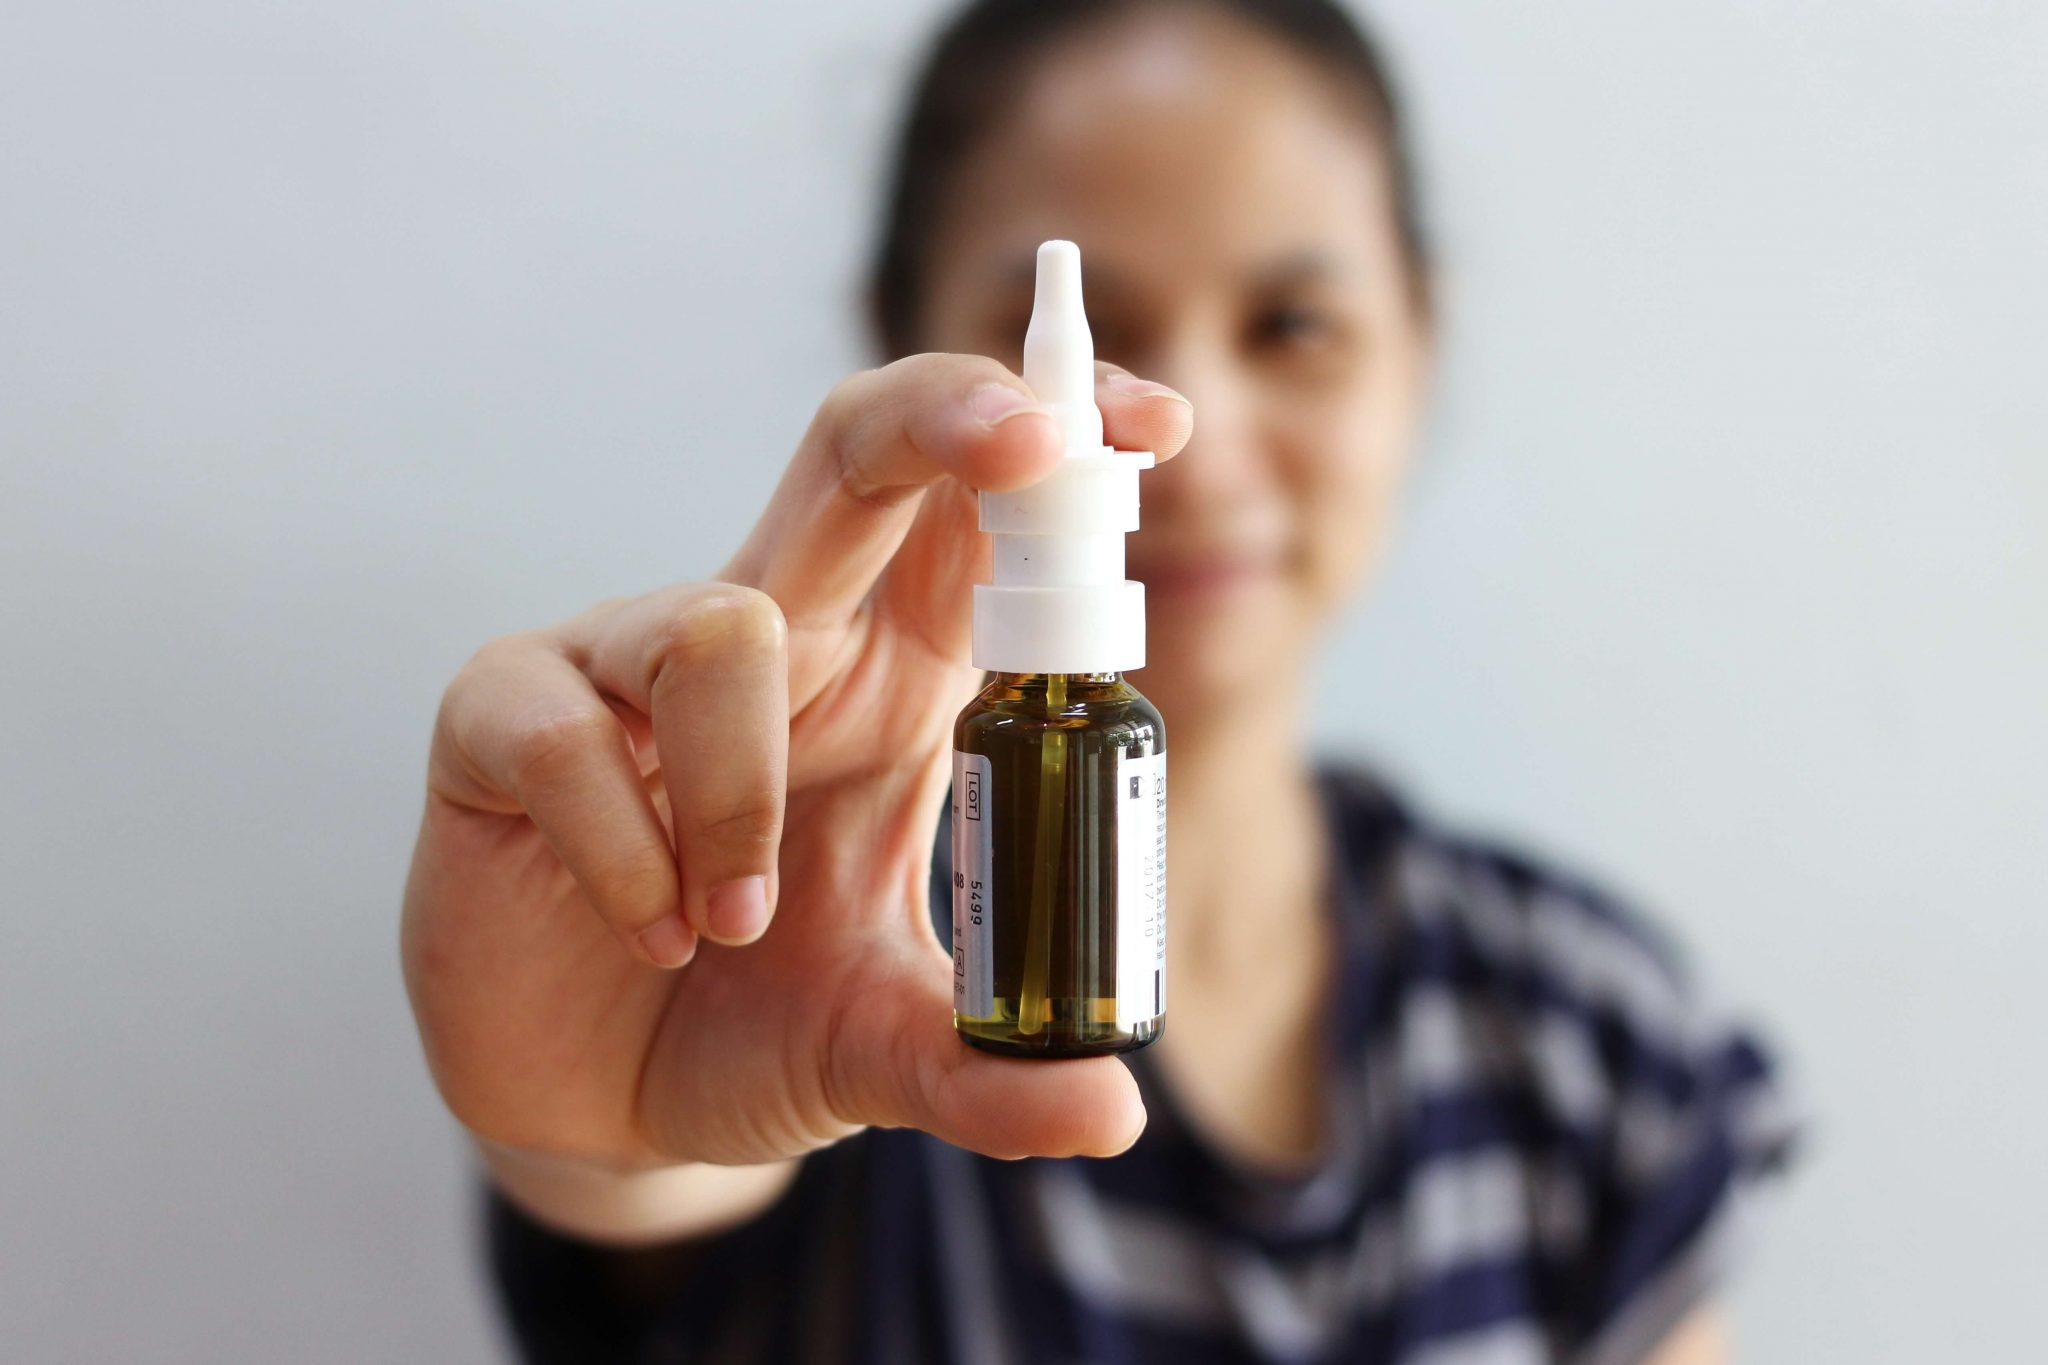 nasal spray for treating depression